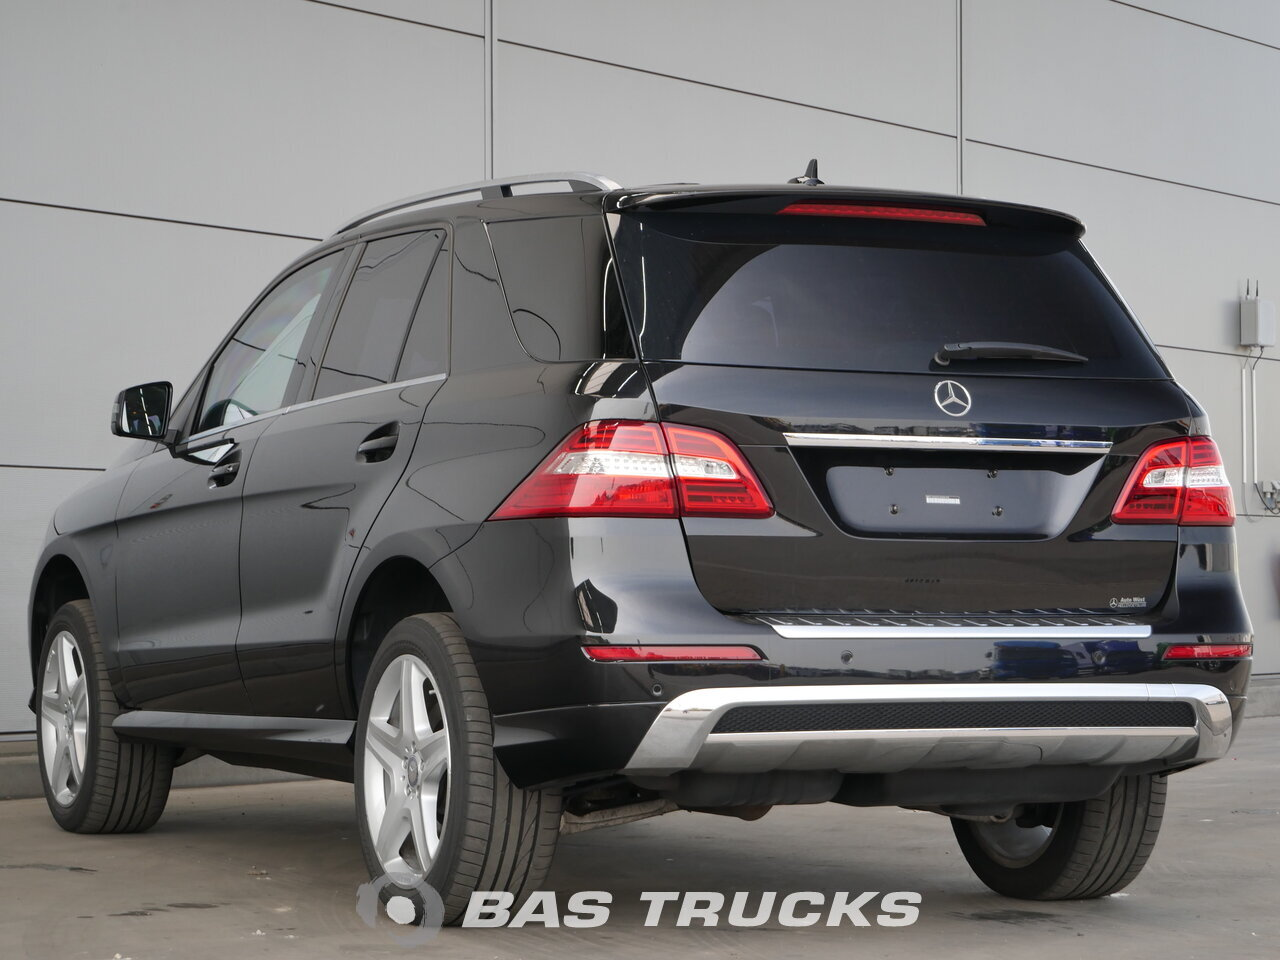 mercedes ml 350 bluetec 4matic guard b4 car bas trucks. Black Bedroom Furniture Sets. Home Design Ideas